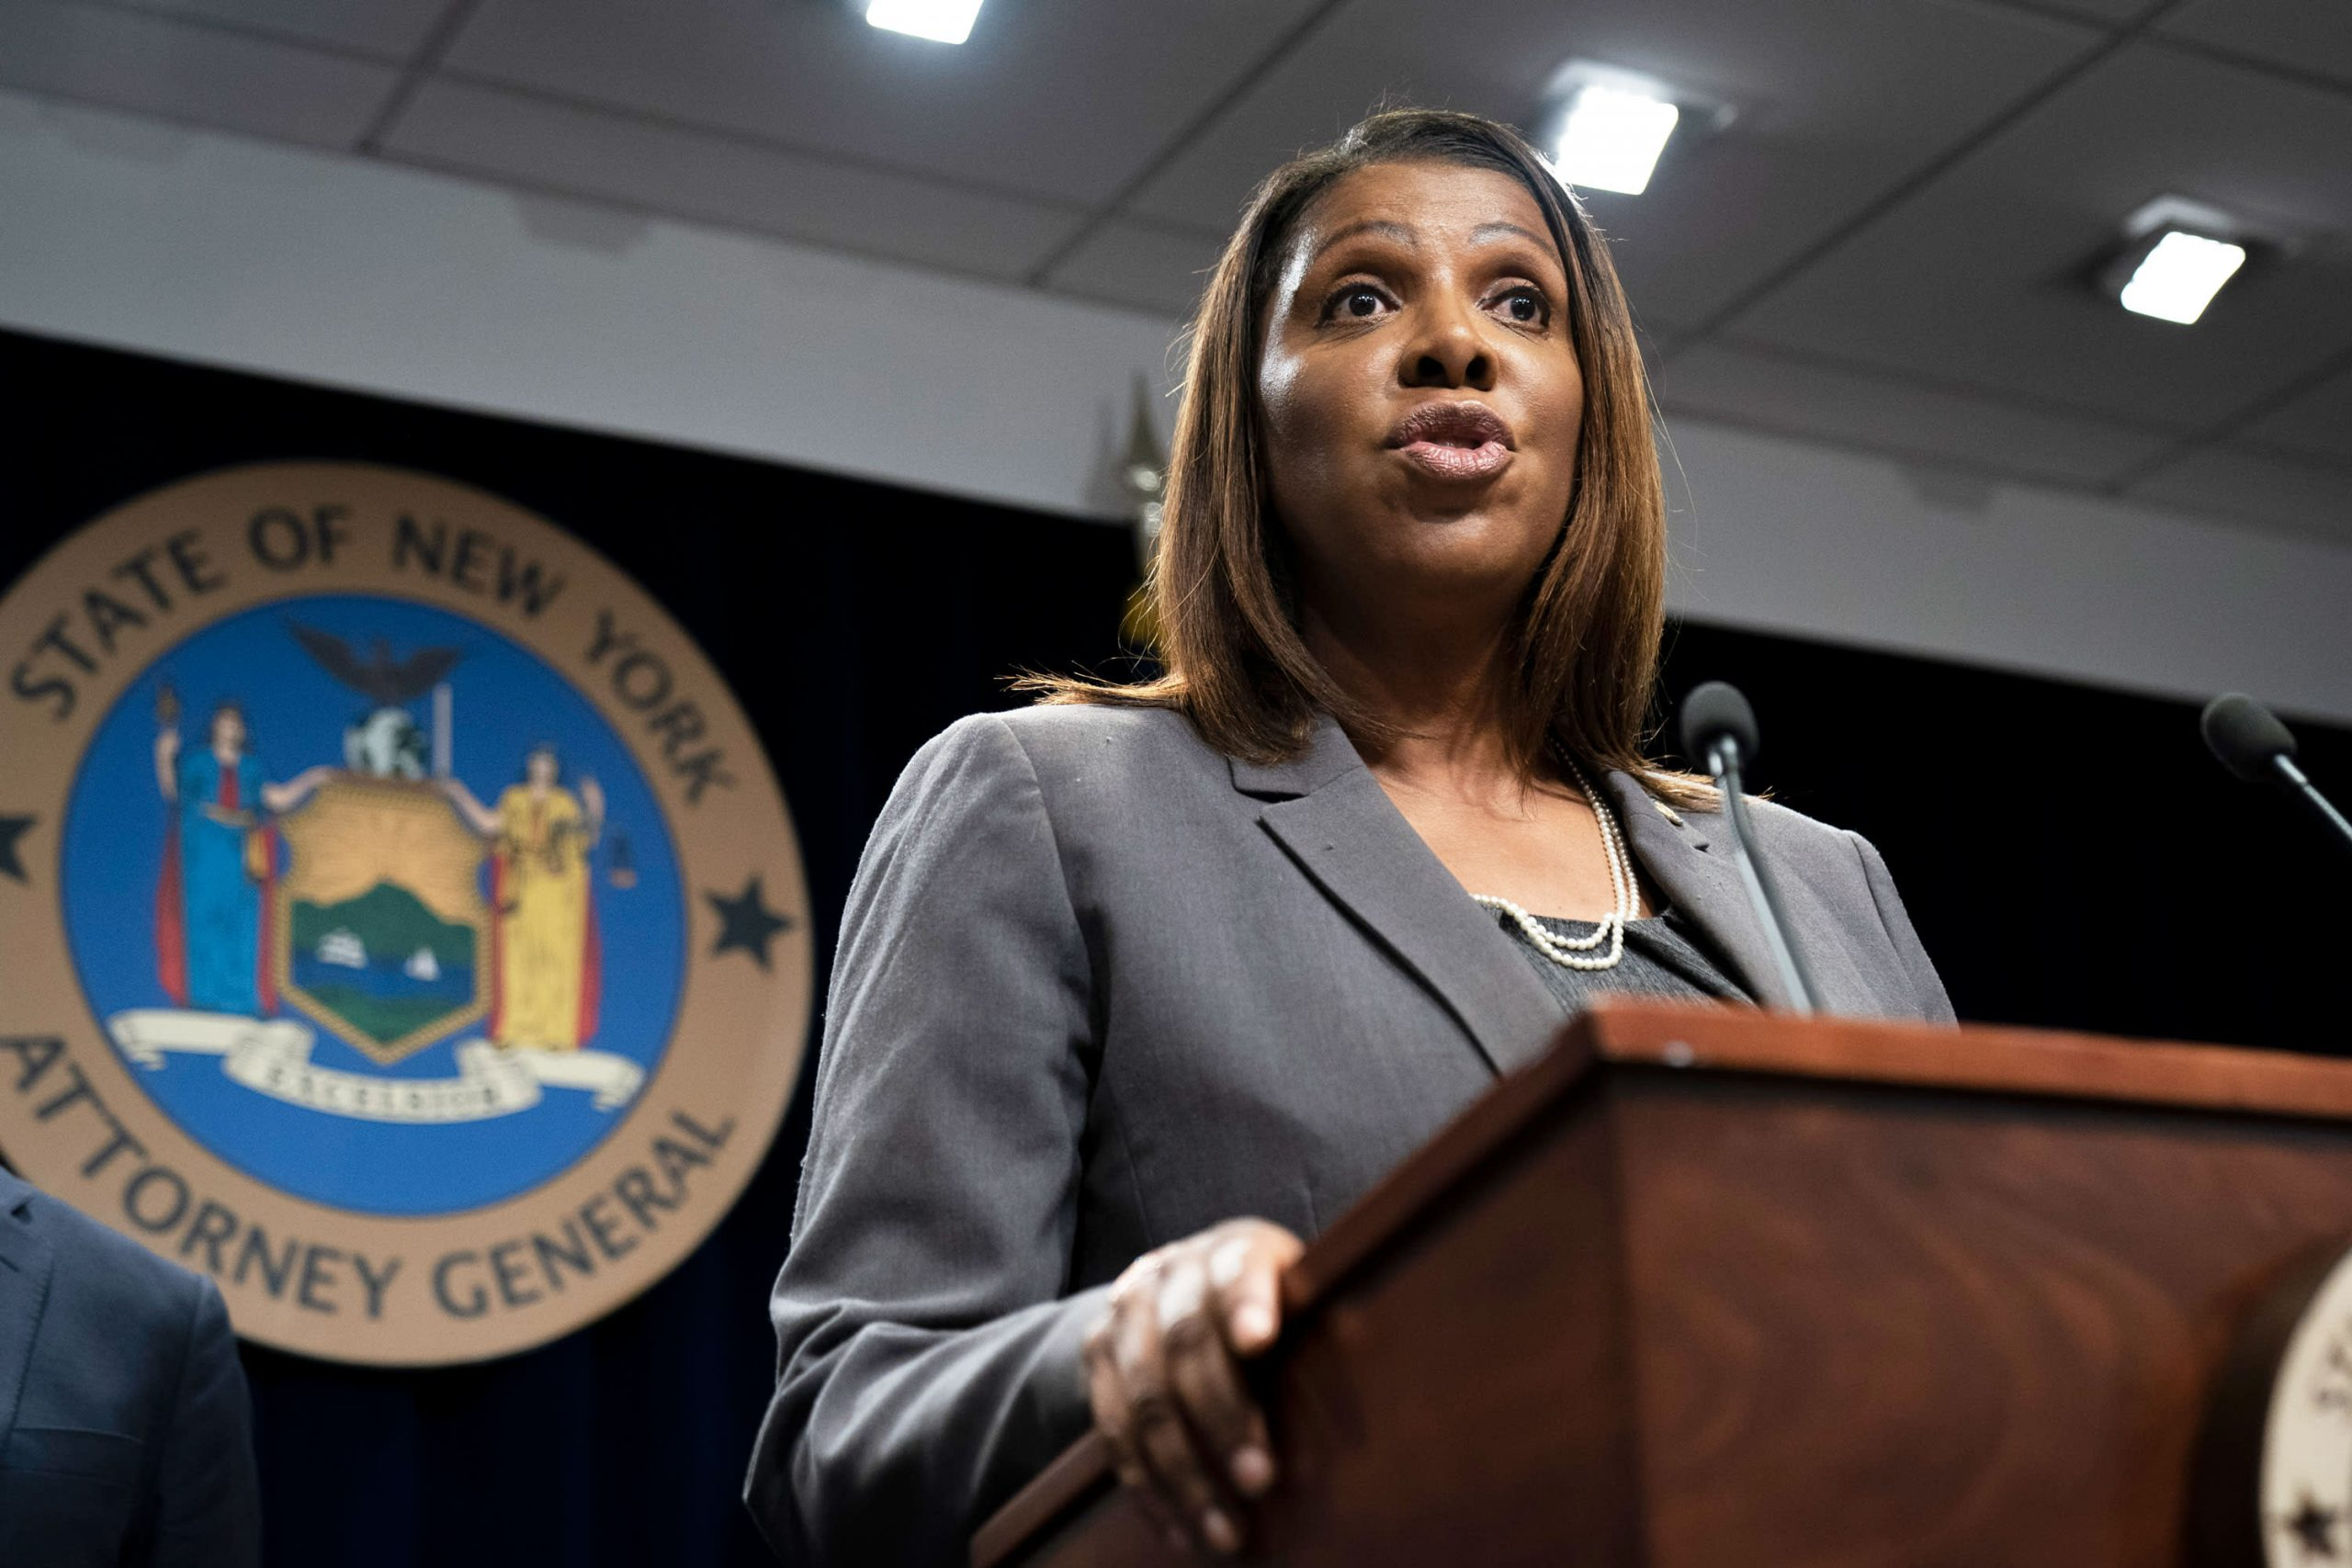 12 attorneys general call on Facebook and Twitter to remove anti-vaxxers from their services